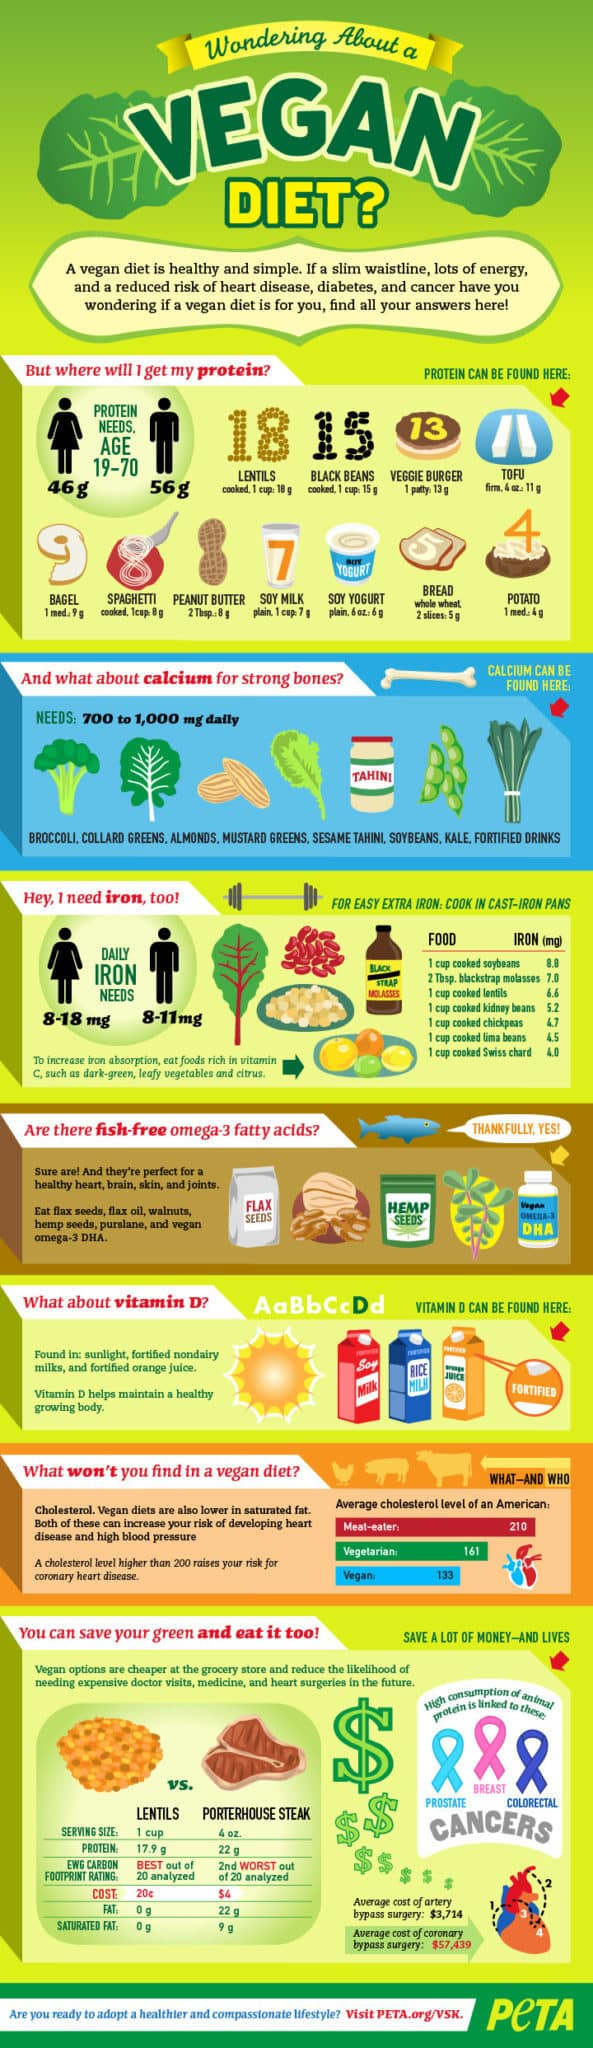 Infographic - Wondering about a vegan diet?